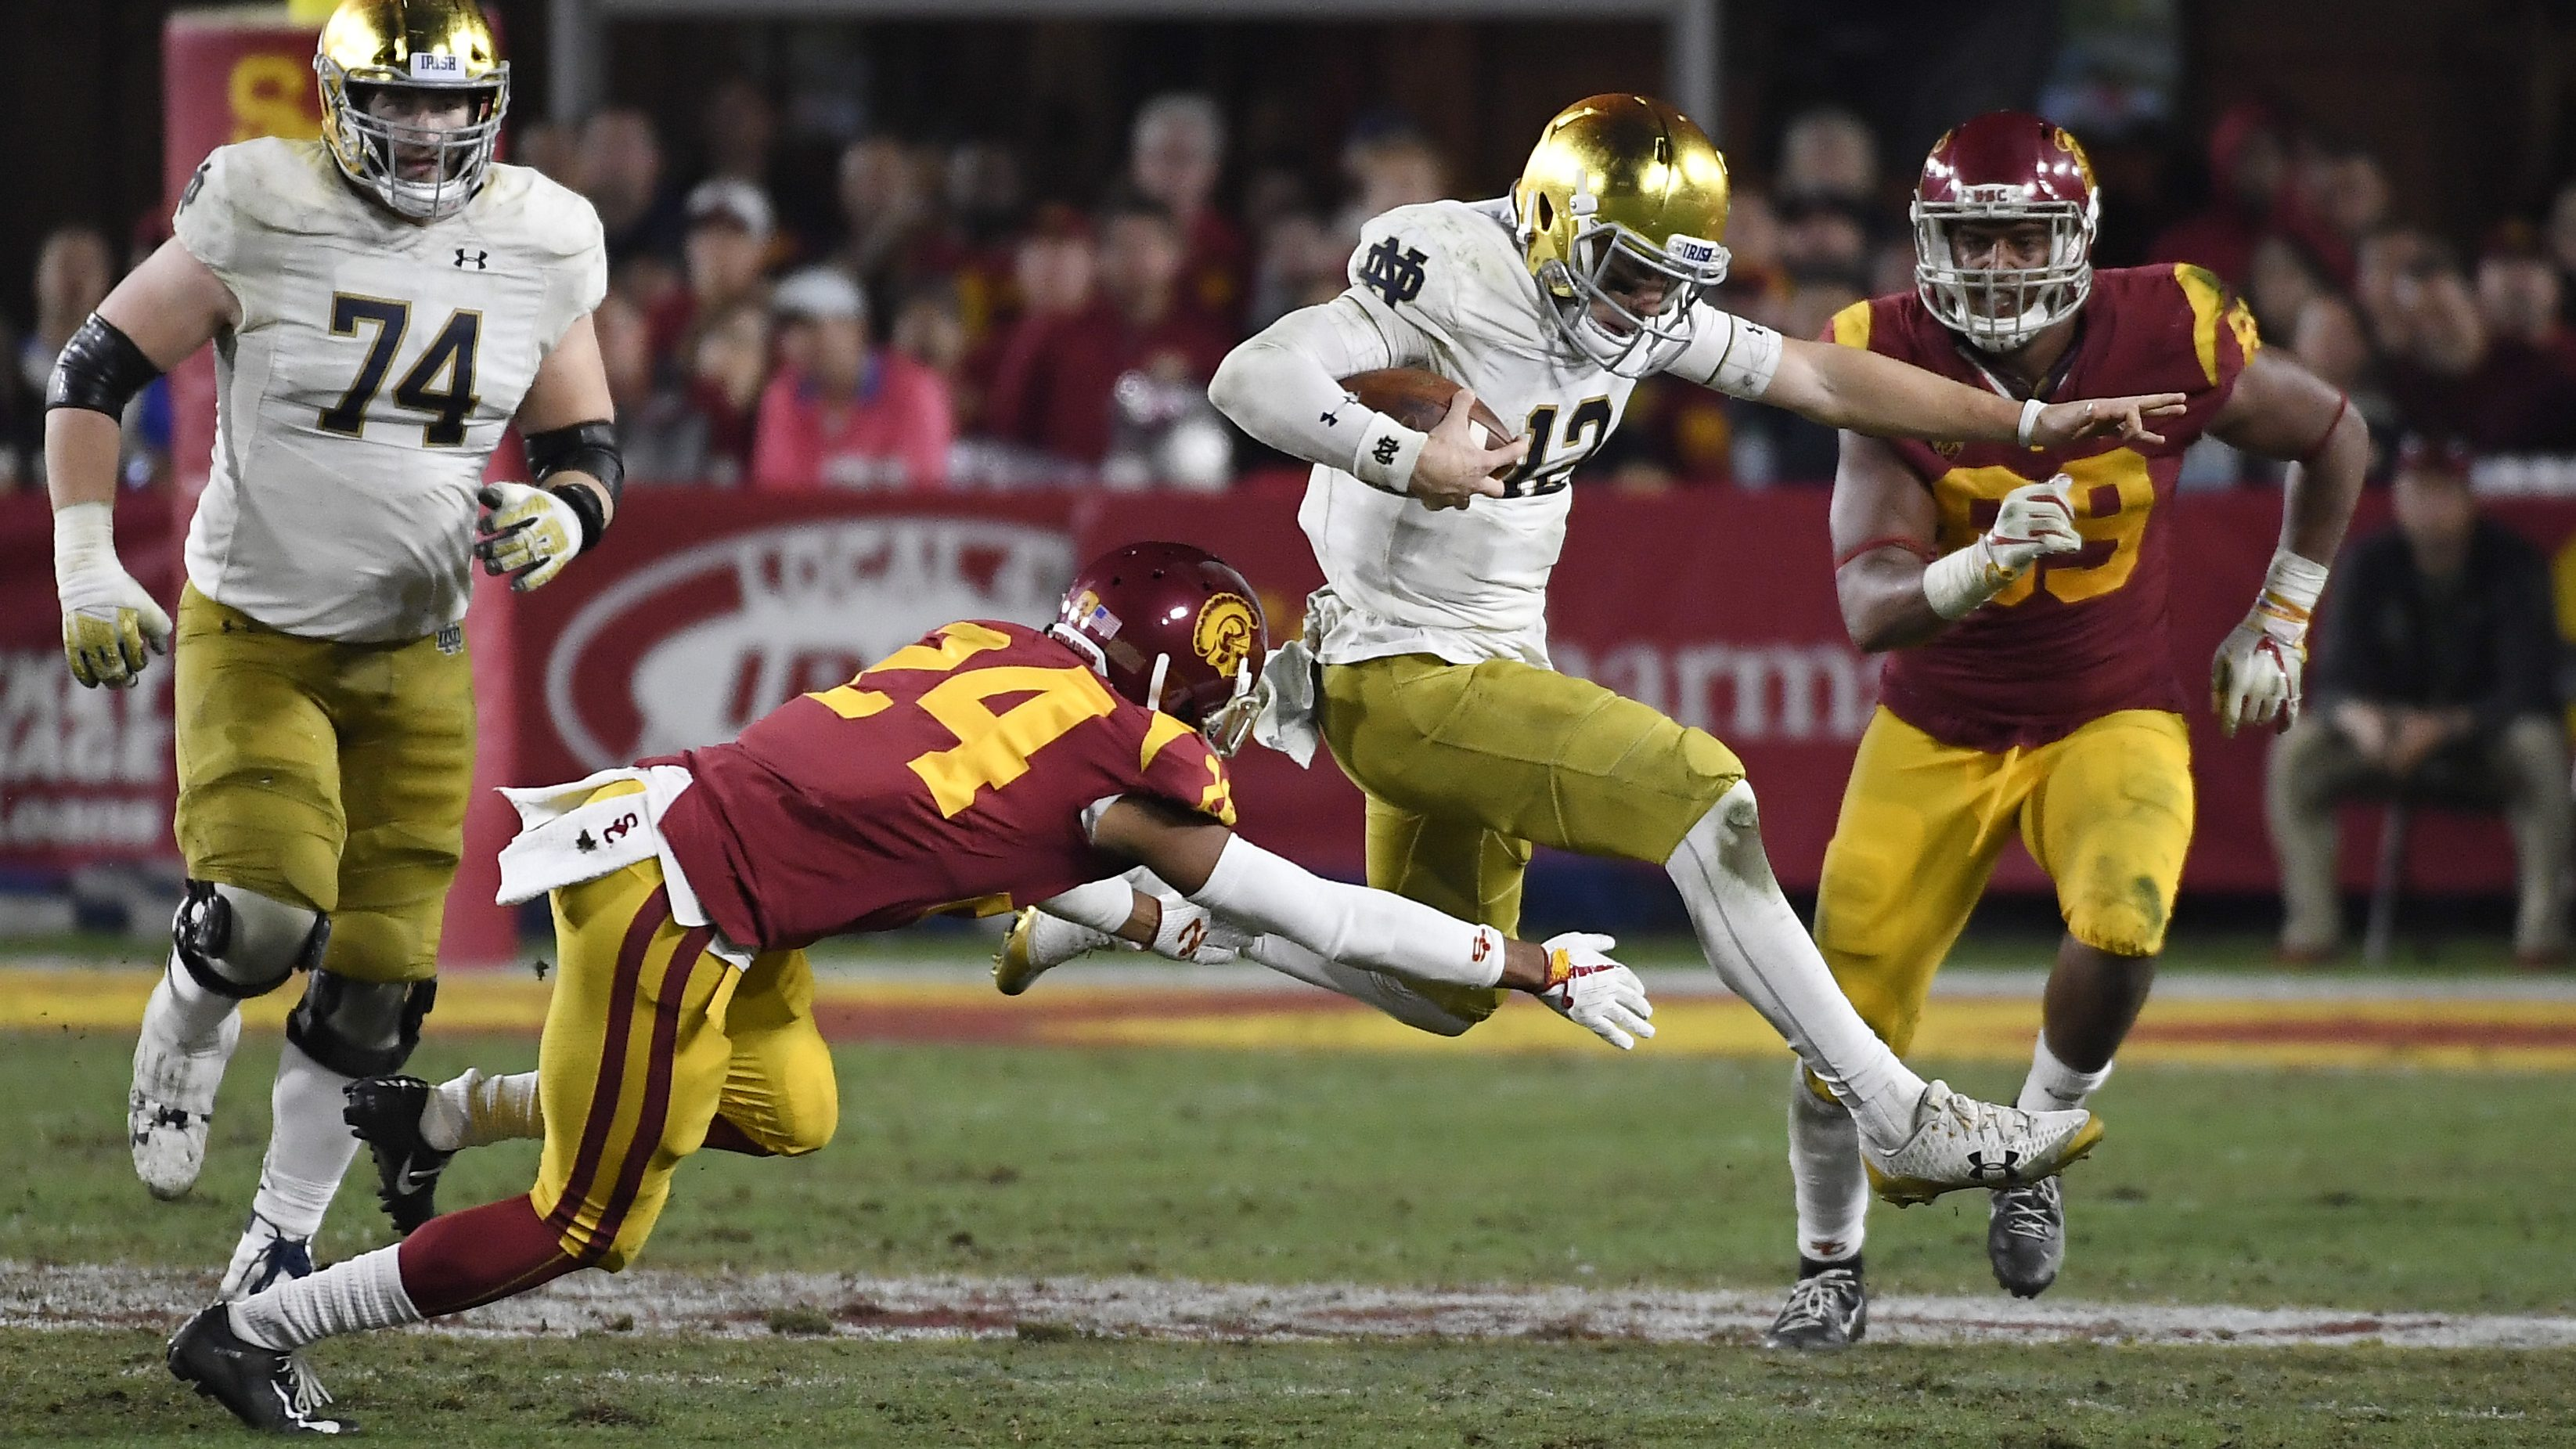 Usc notre dame 2021 betting line cyprus online betting